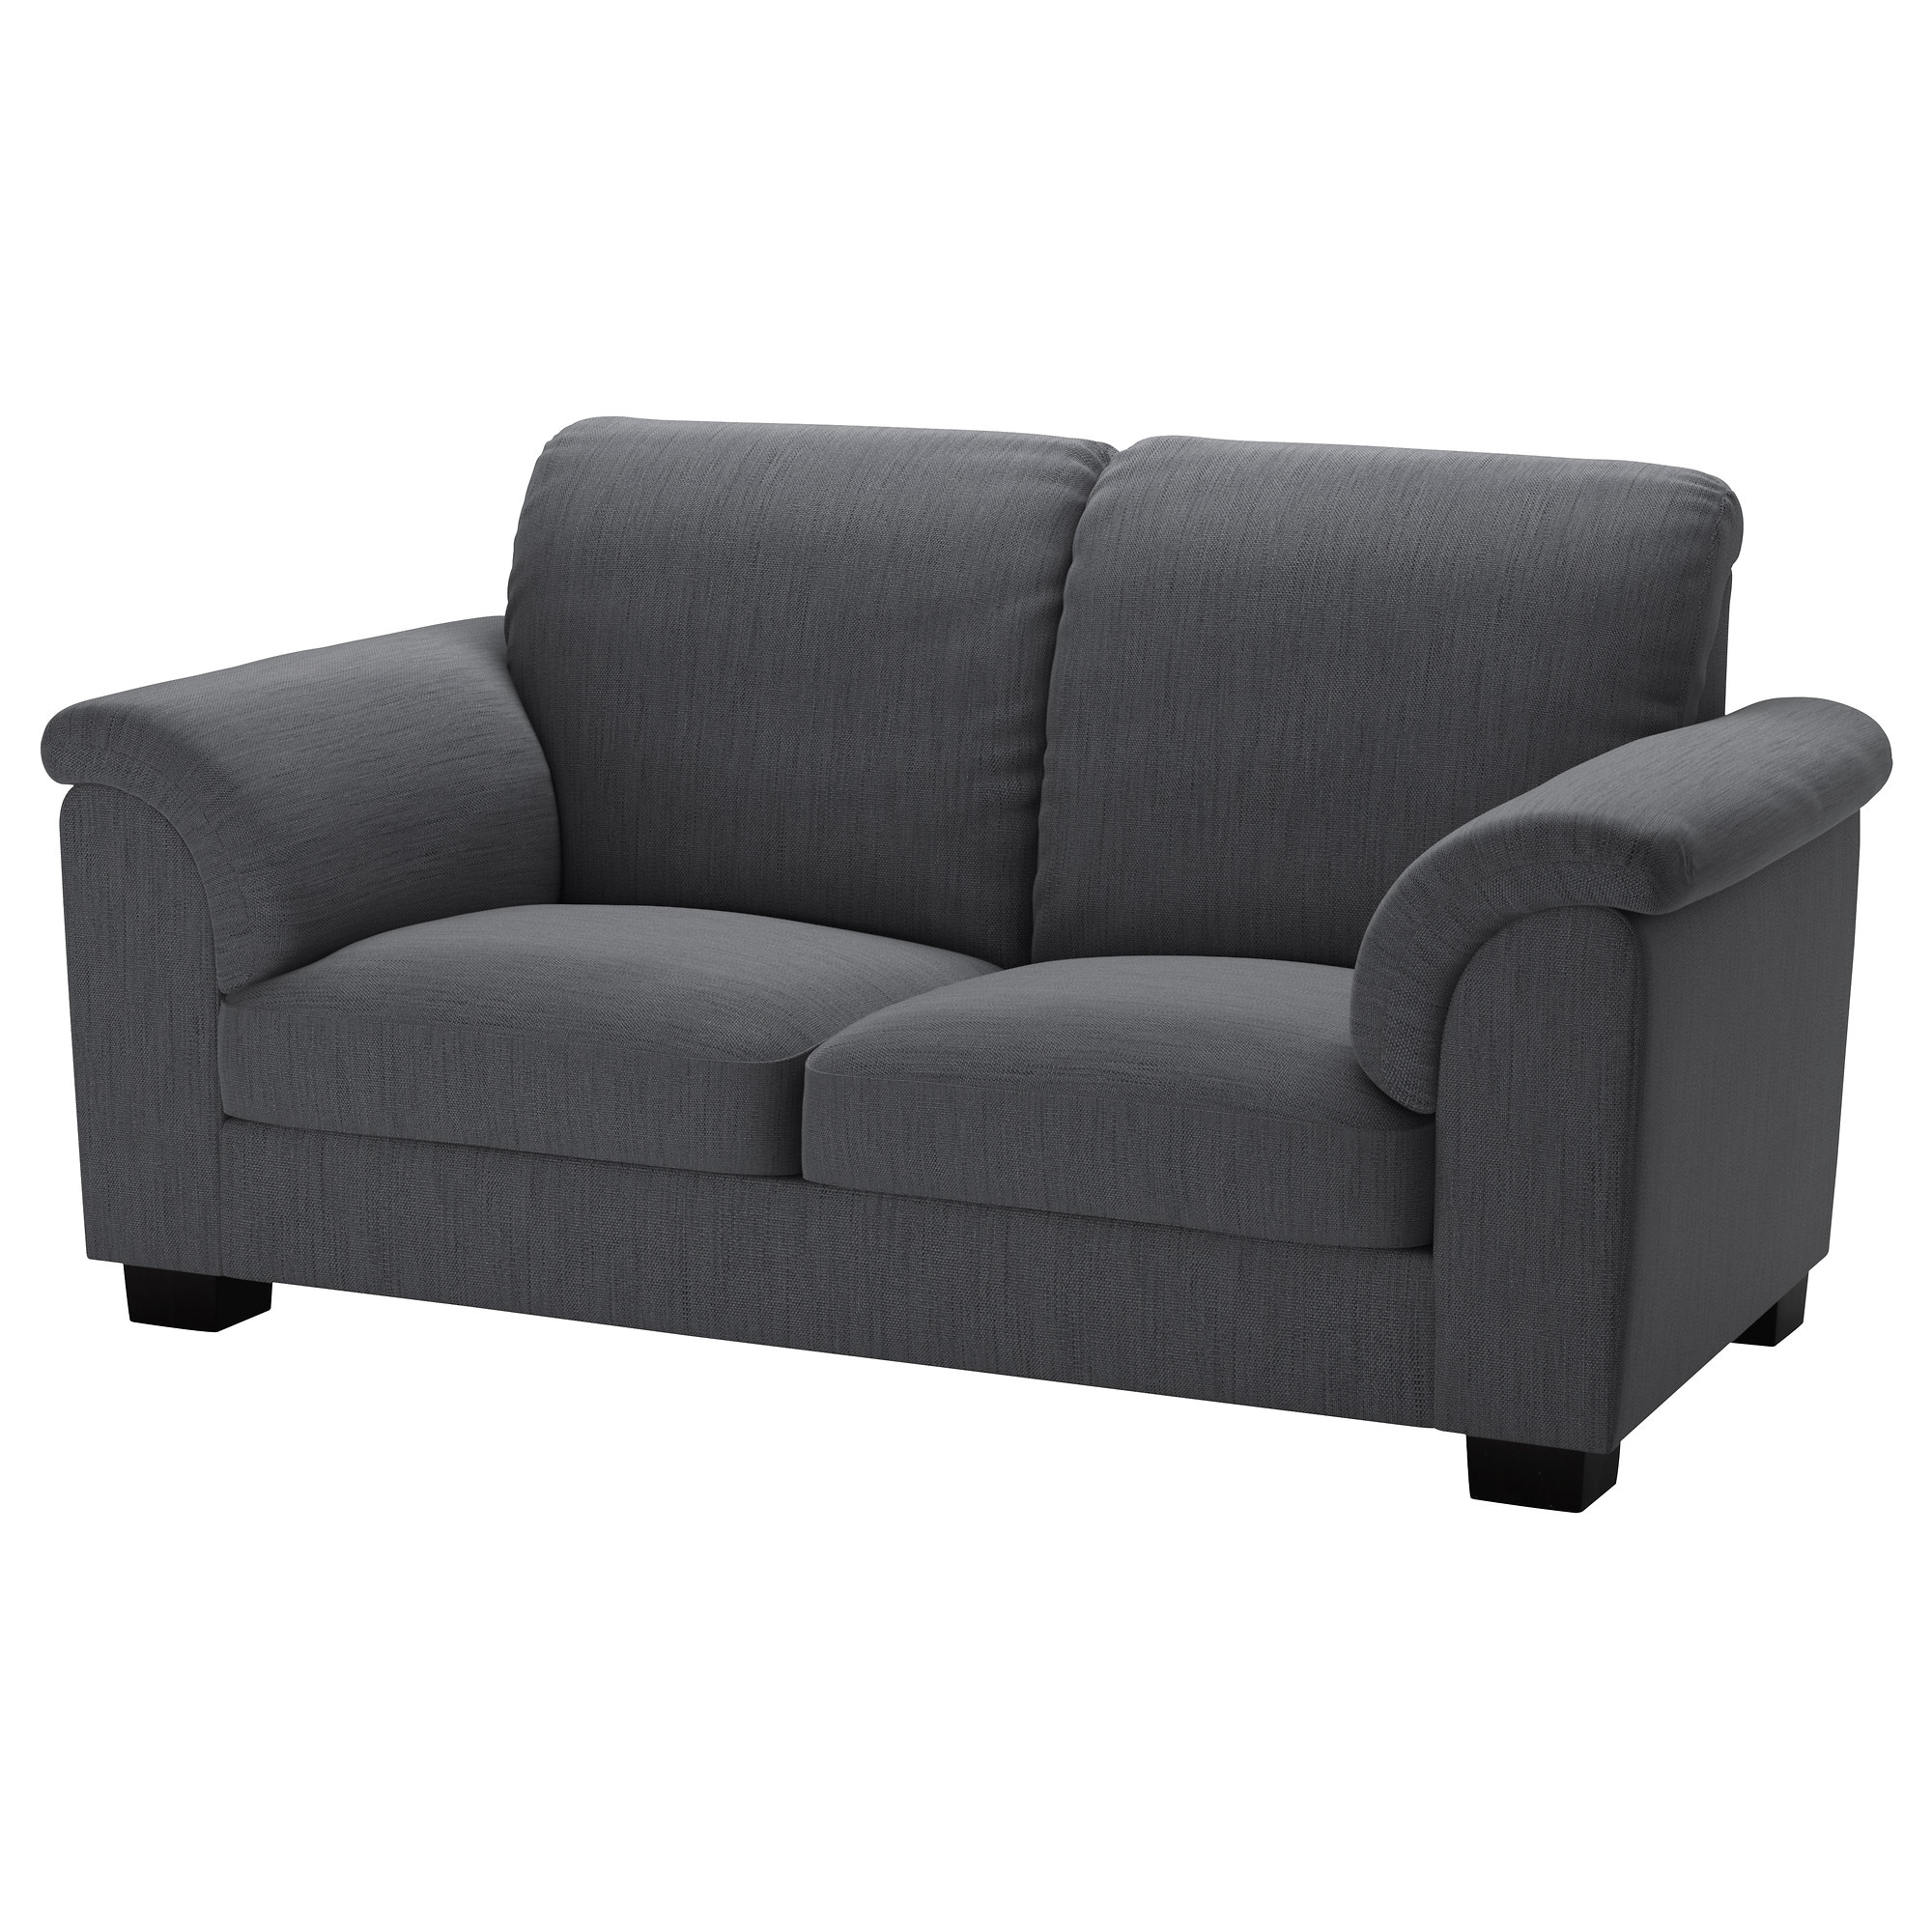 Tidafors Two Seat Sofa Hensta Grey – Ikea With Regard To Ikea Sofa Chairs (Image 25 of 25)